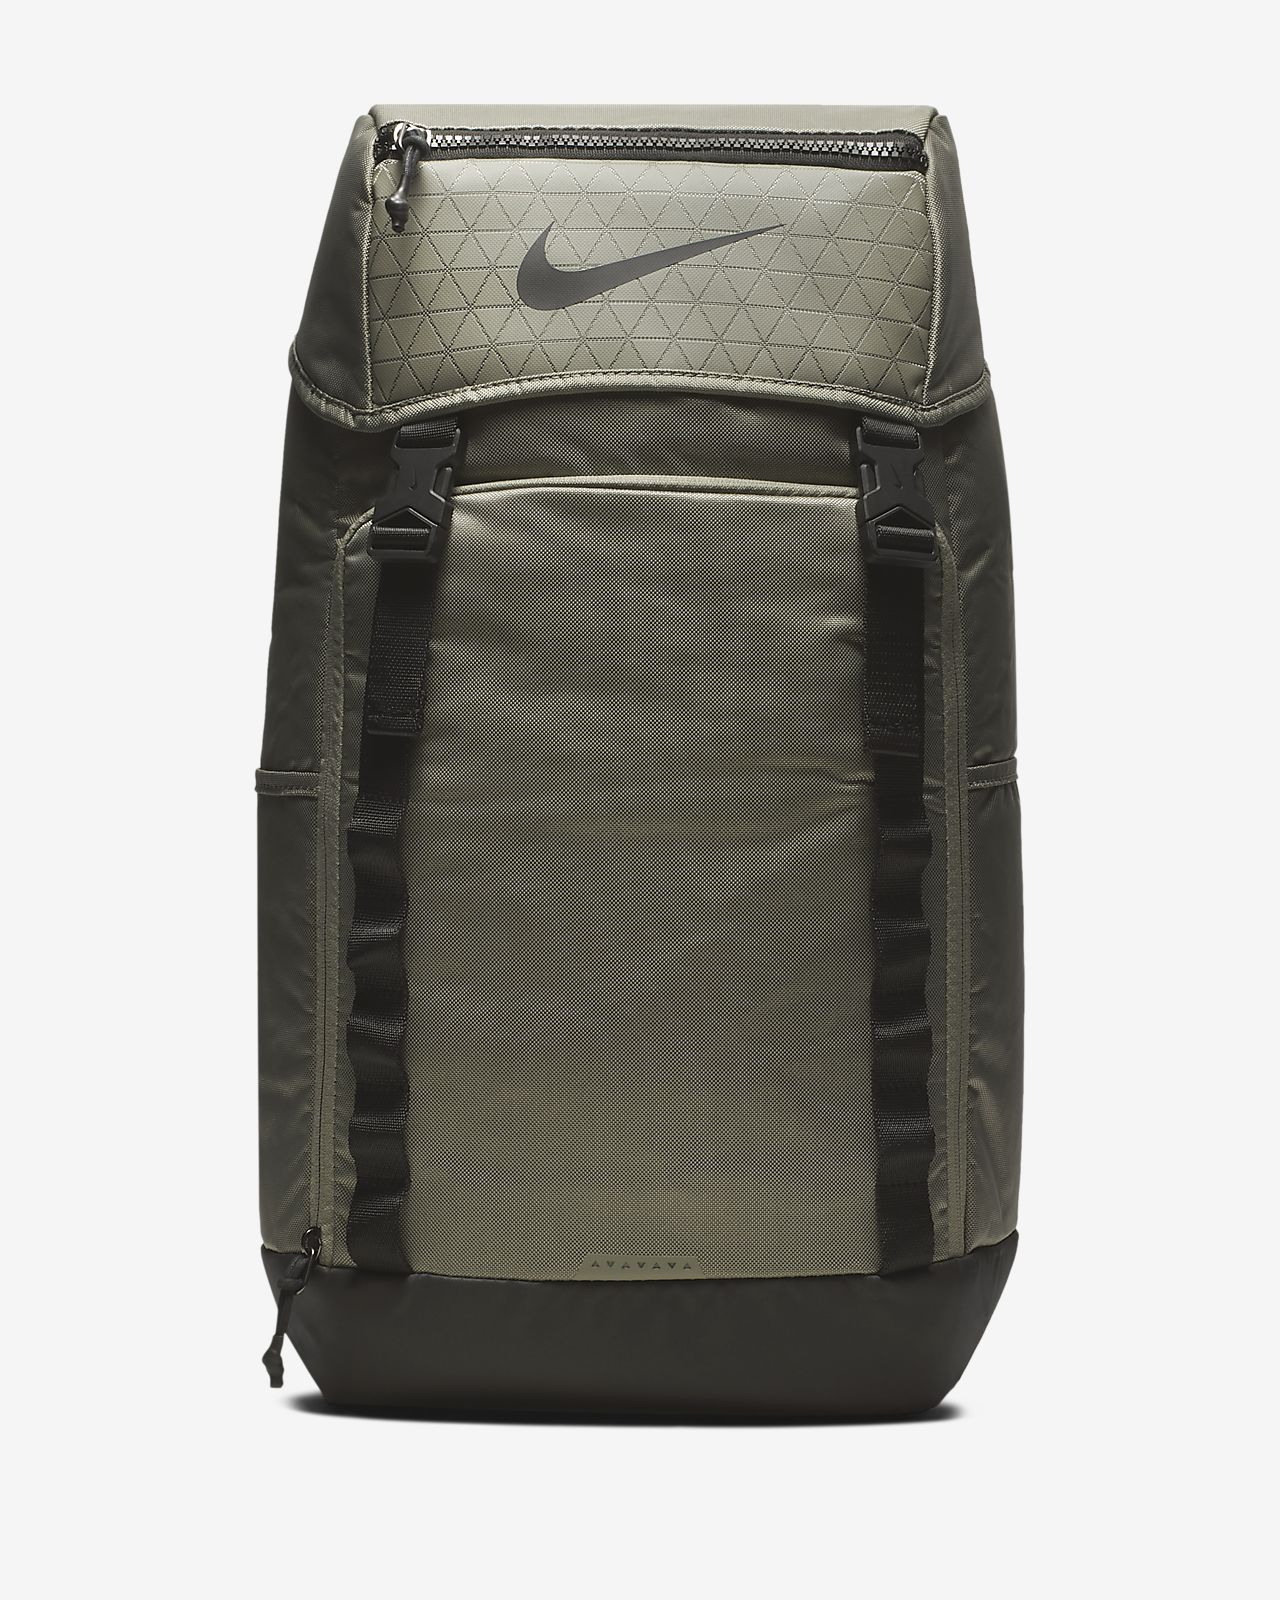 25970d885660 Nike Customized Backpack- Fenix Toulouse Handball